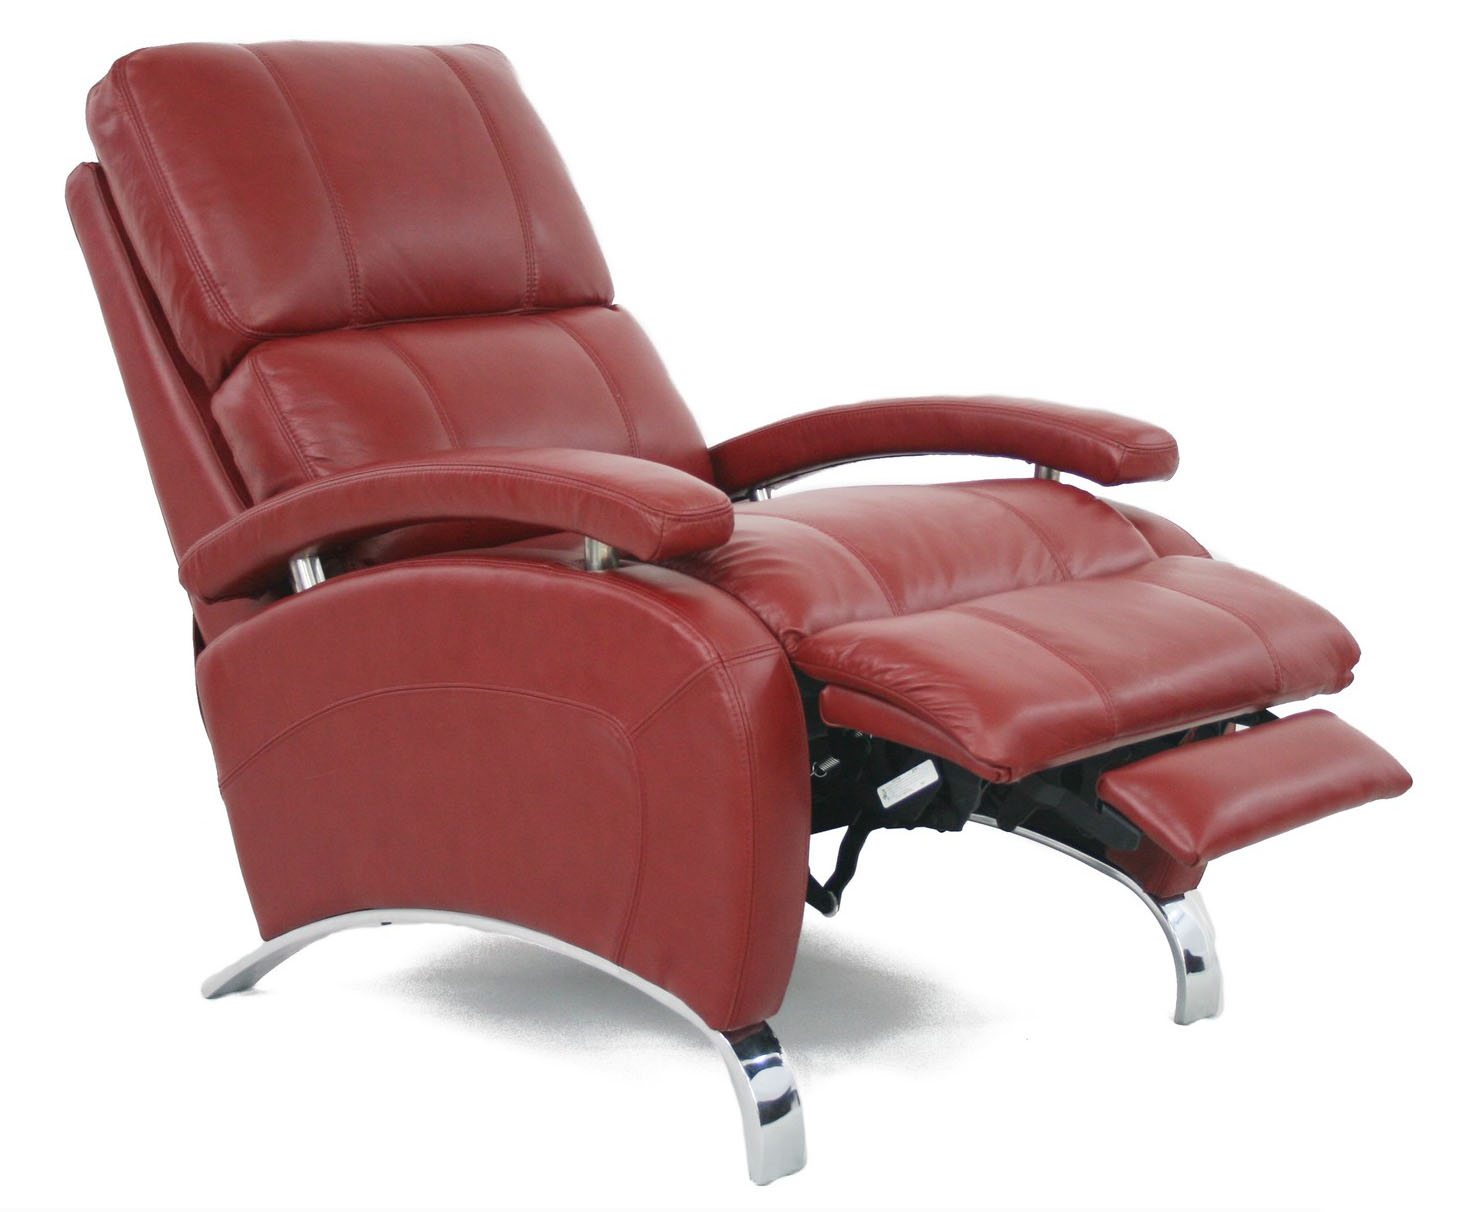 reclining drop recliner in tilt chairs geriatric lumex htm chair p space arm